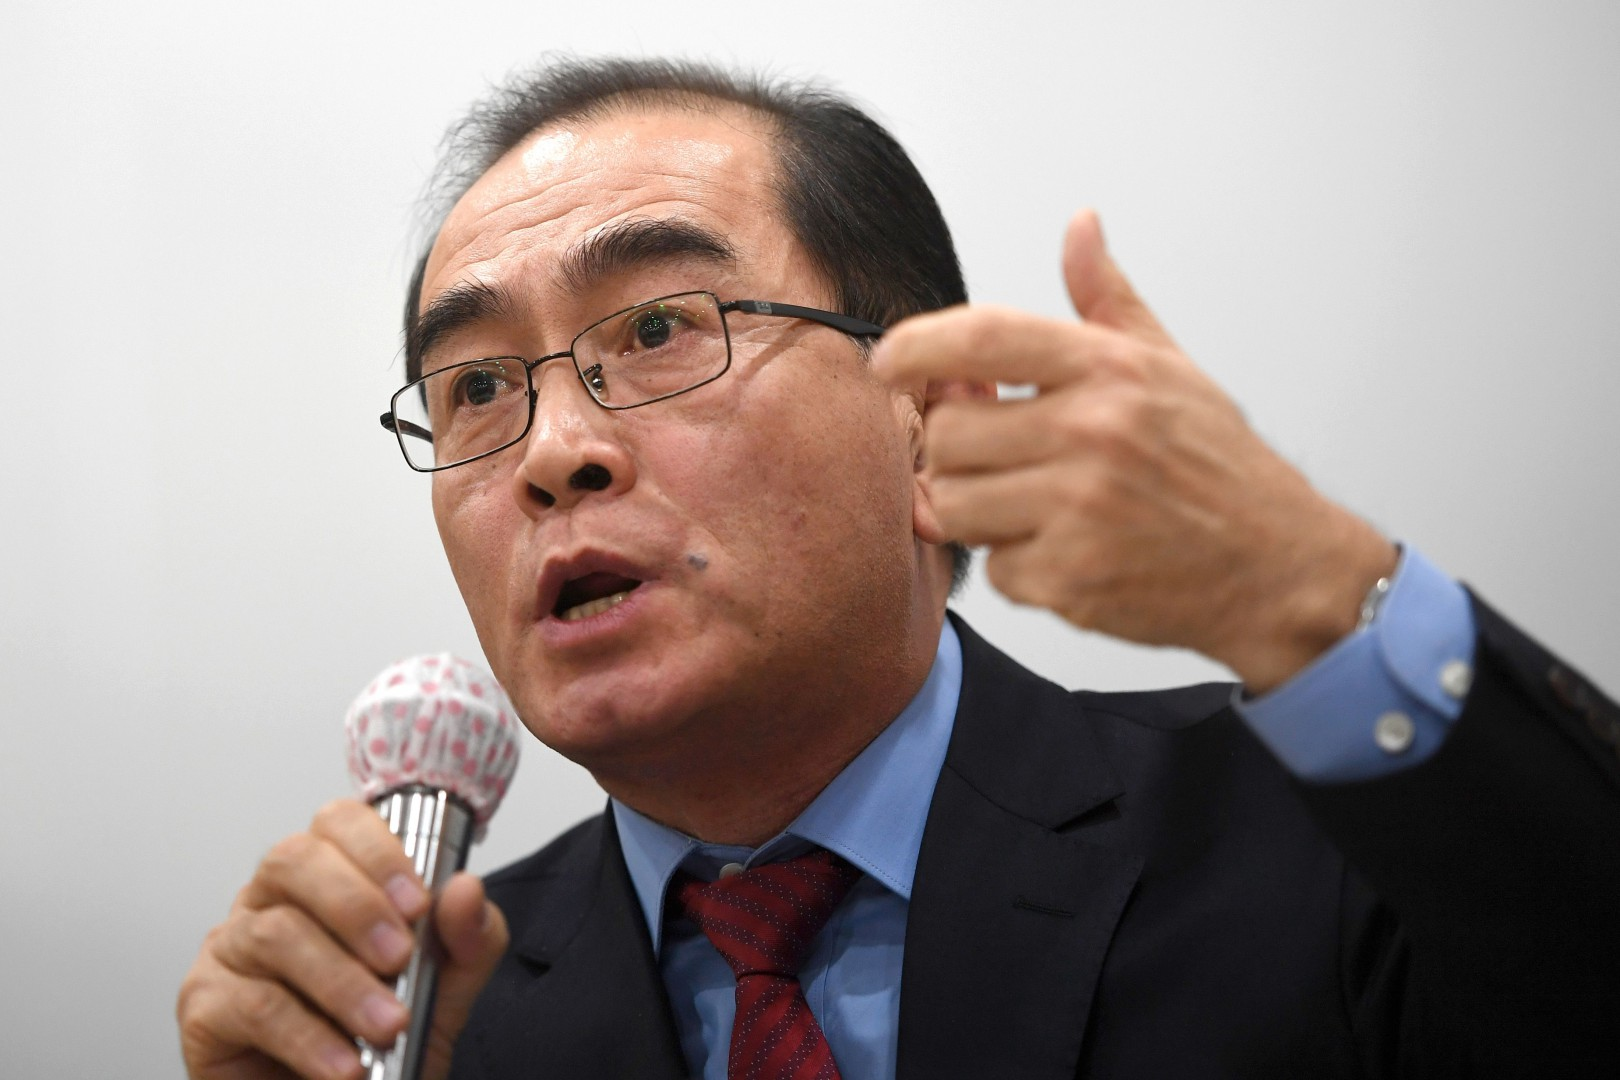 Thae Yong-ho, former North Korean deputy ambassador to Britain who defected to South Korea, speaks during a press conference to support Cho Seong Gil, a North Korean diplomat in Italy seeking asylum, in Seoul on January 9, 2019. - Jo Song Gil, the North's acting ambassador to Rome, went into hiding with his wife in November and is seeking asylum, according to Seoul's intelligence authorities. Thae, who said he once worked with Jo at Pyongyang's foreign ministry, wrote an open letter urging his ex-colleague to come to the South instead and work together to help the two Koreas reunify. (Photo by Jung Yeon-je / AFP)